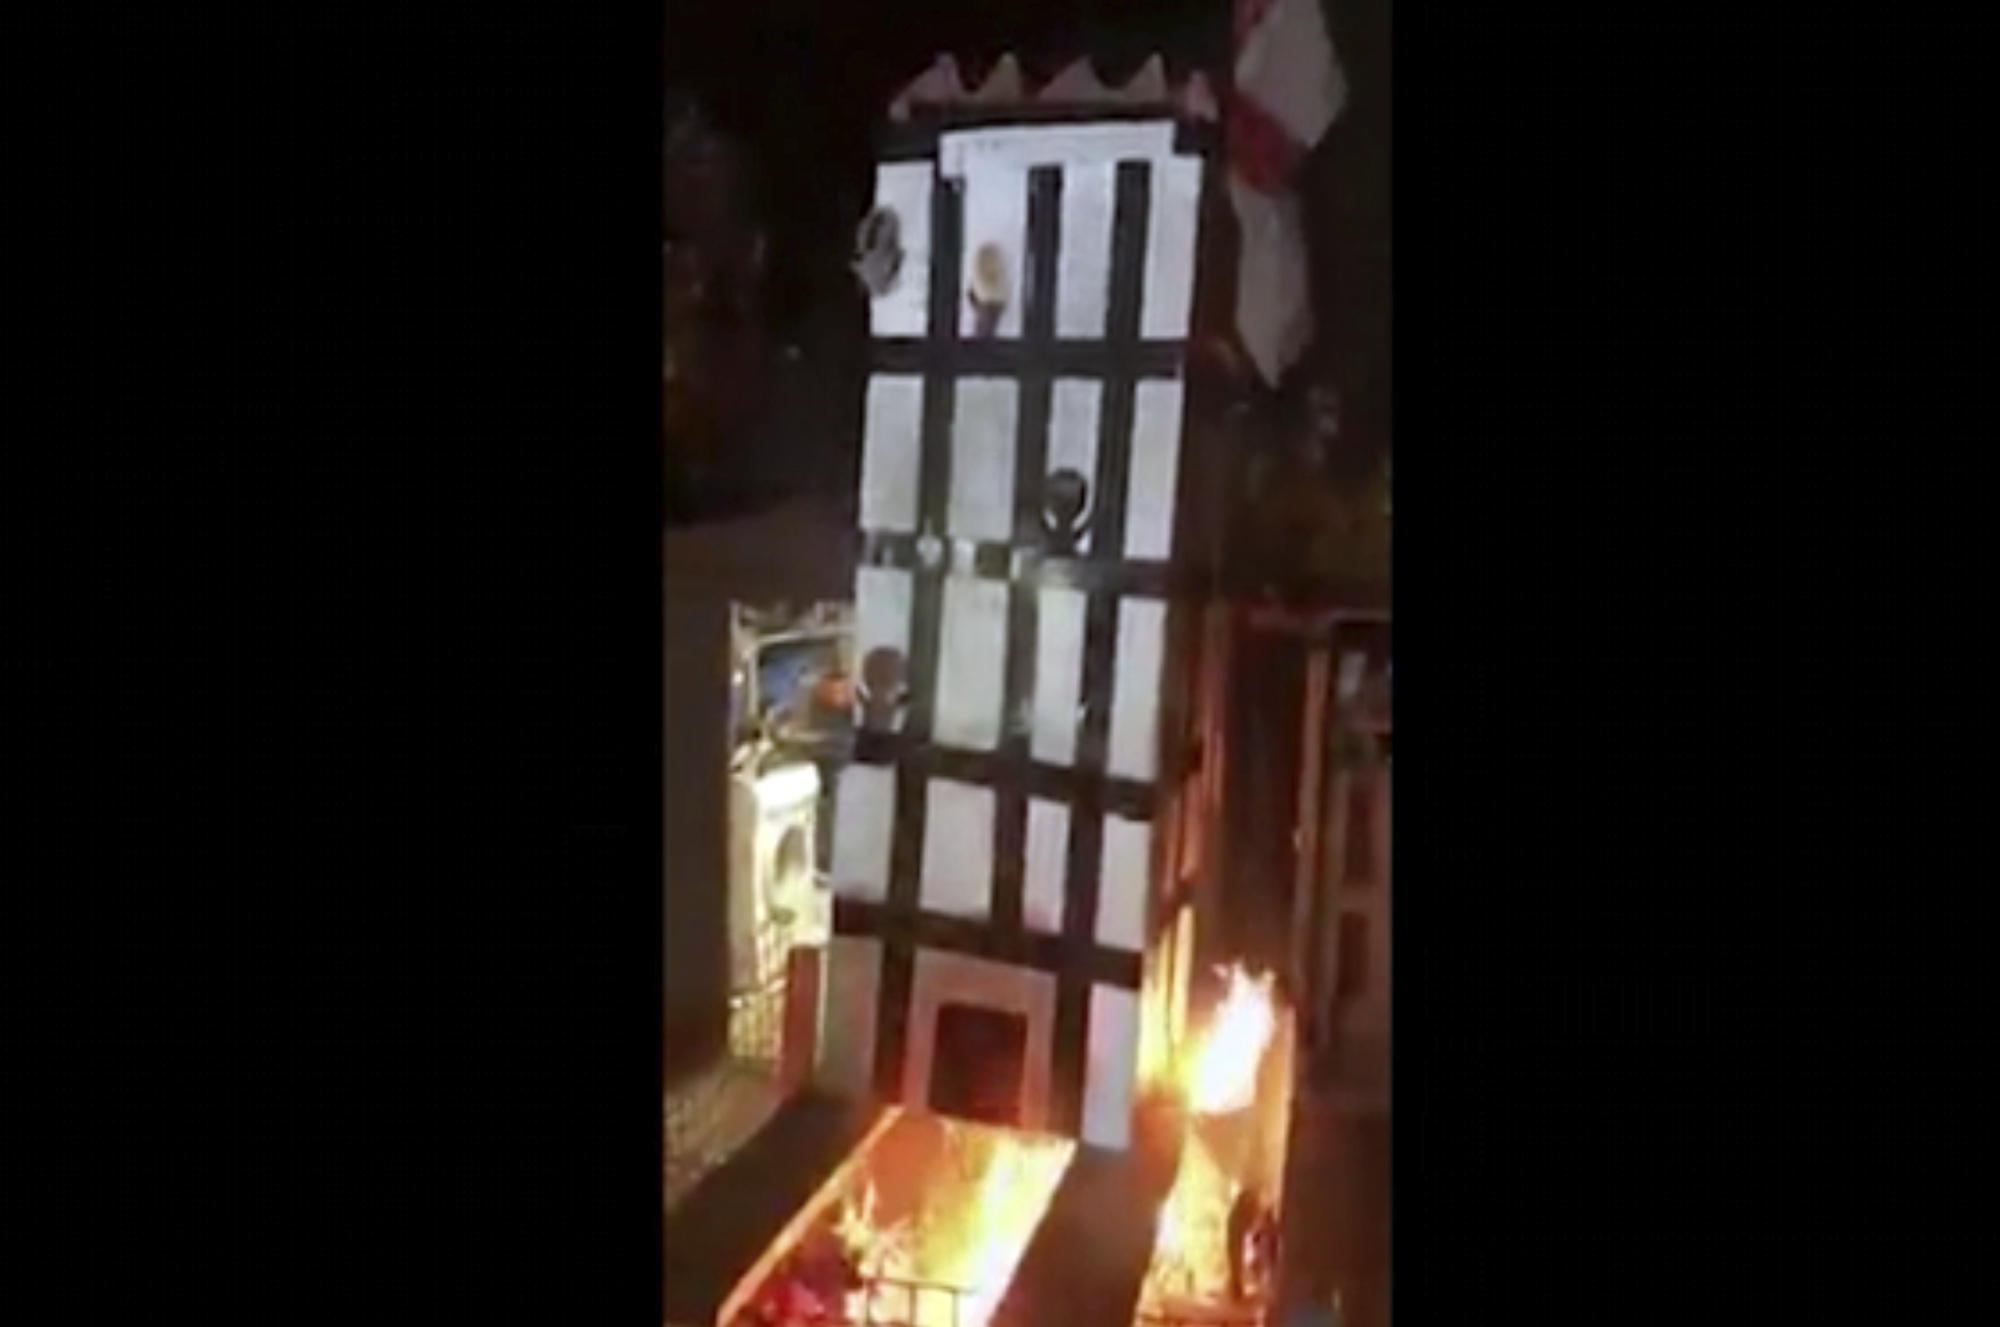 In this grab taken from video made available on Tuesday, people place a model of Grenfell Towers onto a bonfire, in London.   UGC / VIA AP